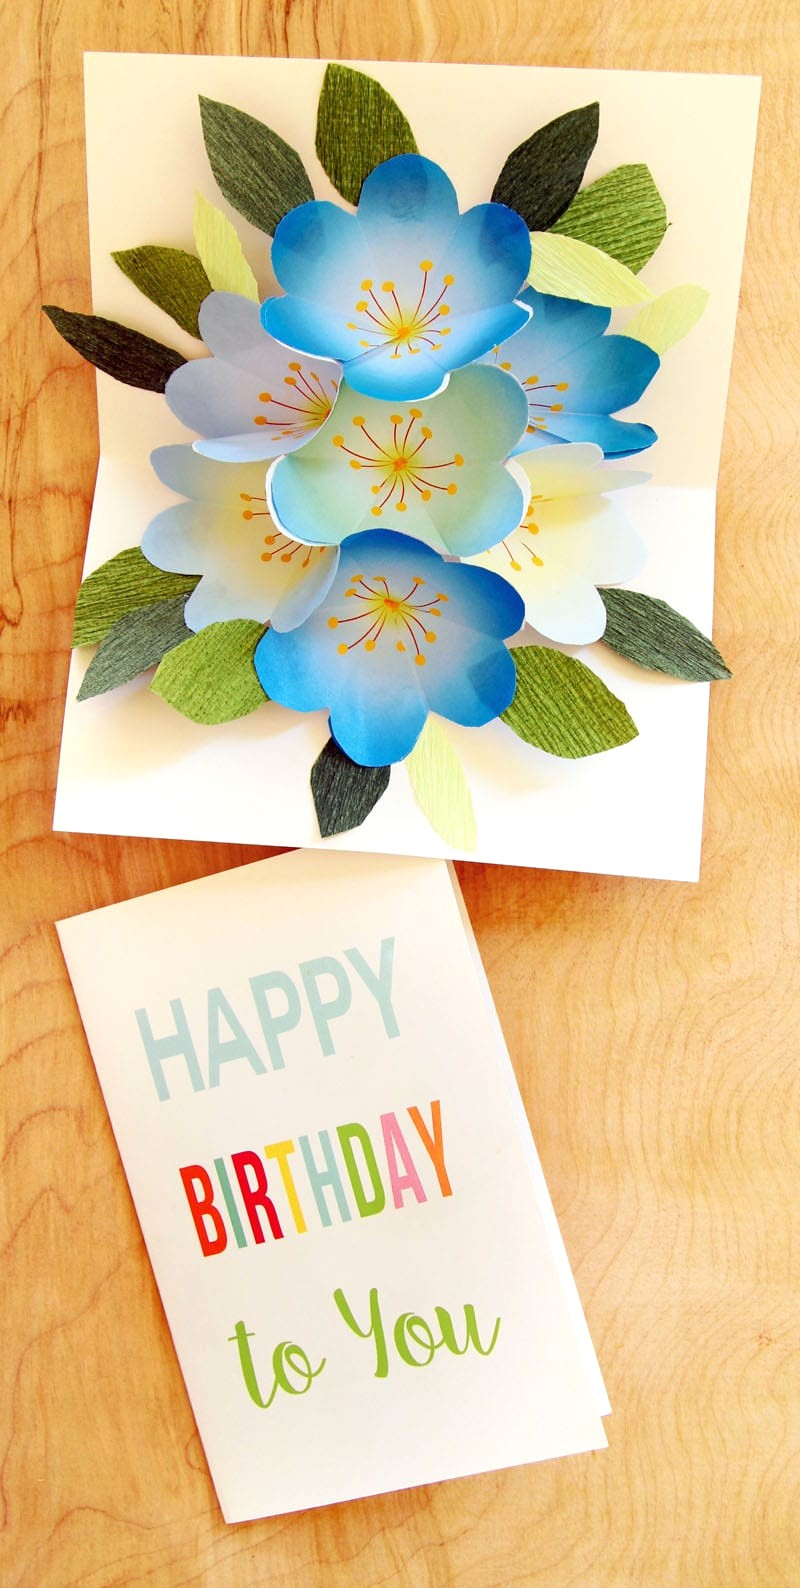 Easy Diy Free Printable Happy Birthday Card Greeting Pop Up Bouquet - Free Printable Happy Birthday Cards For Dad